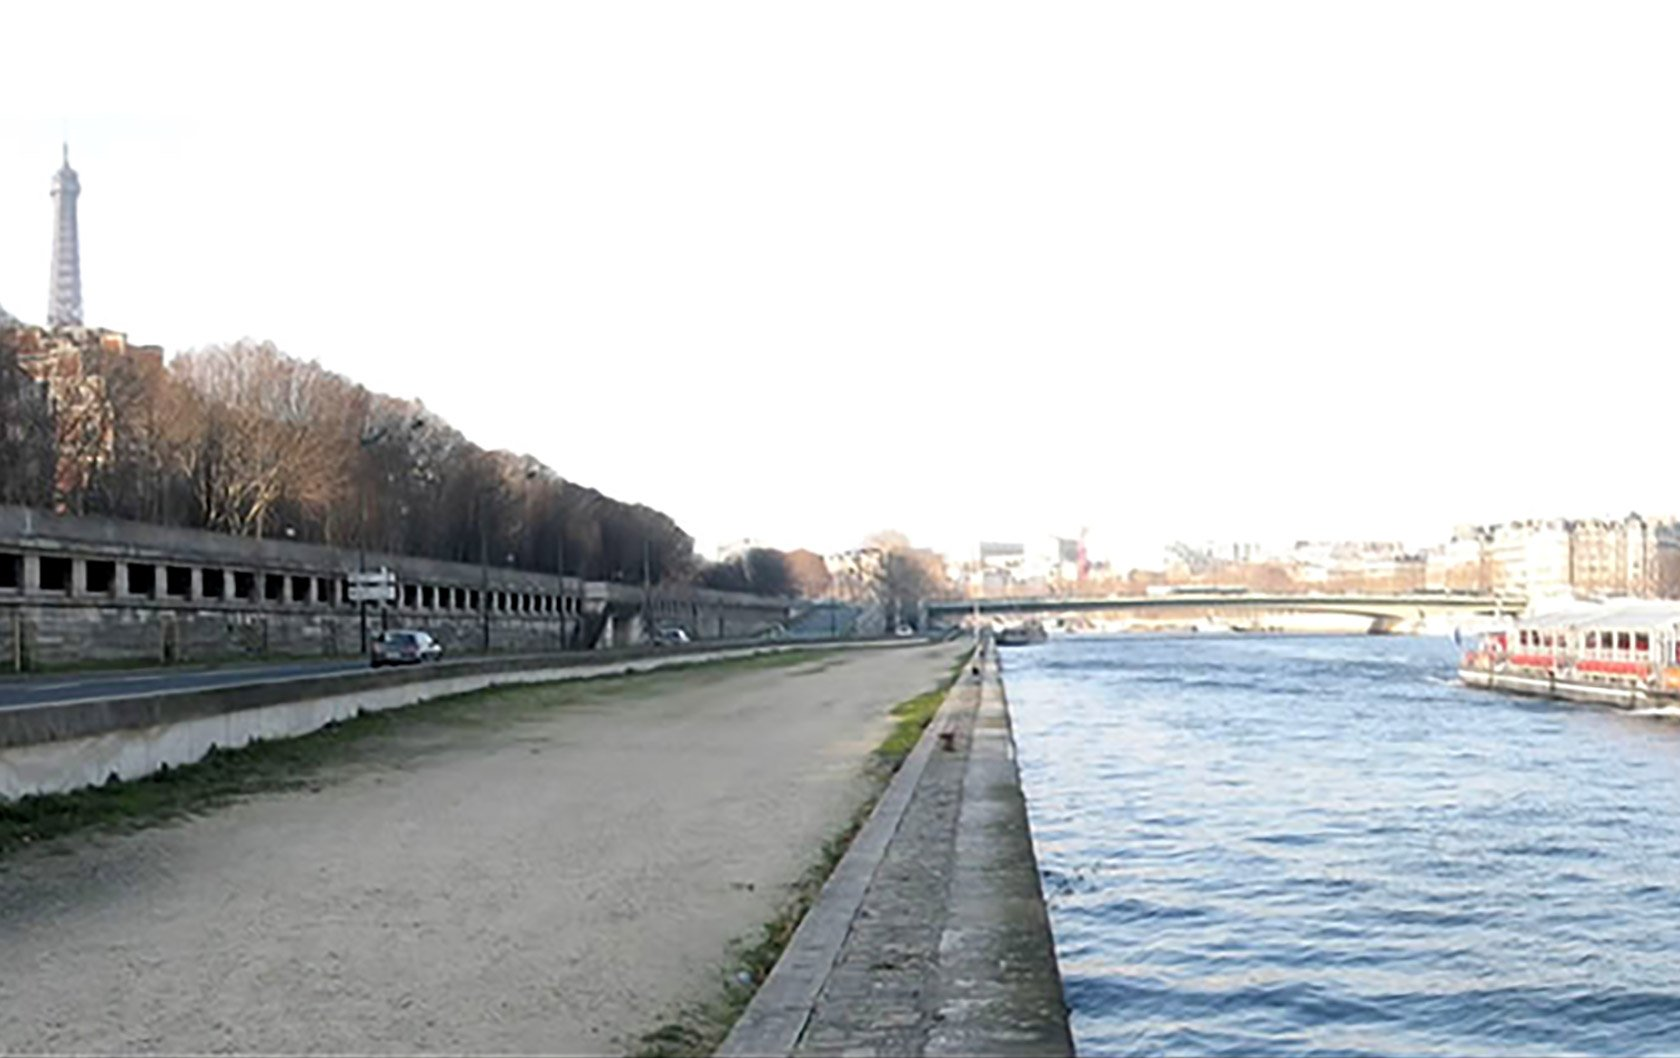 banks-of-the-seine-transformation-pont-alma-paris-perfect-apt-rentals-before